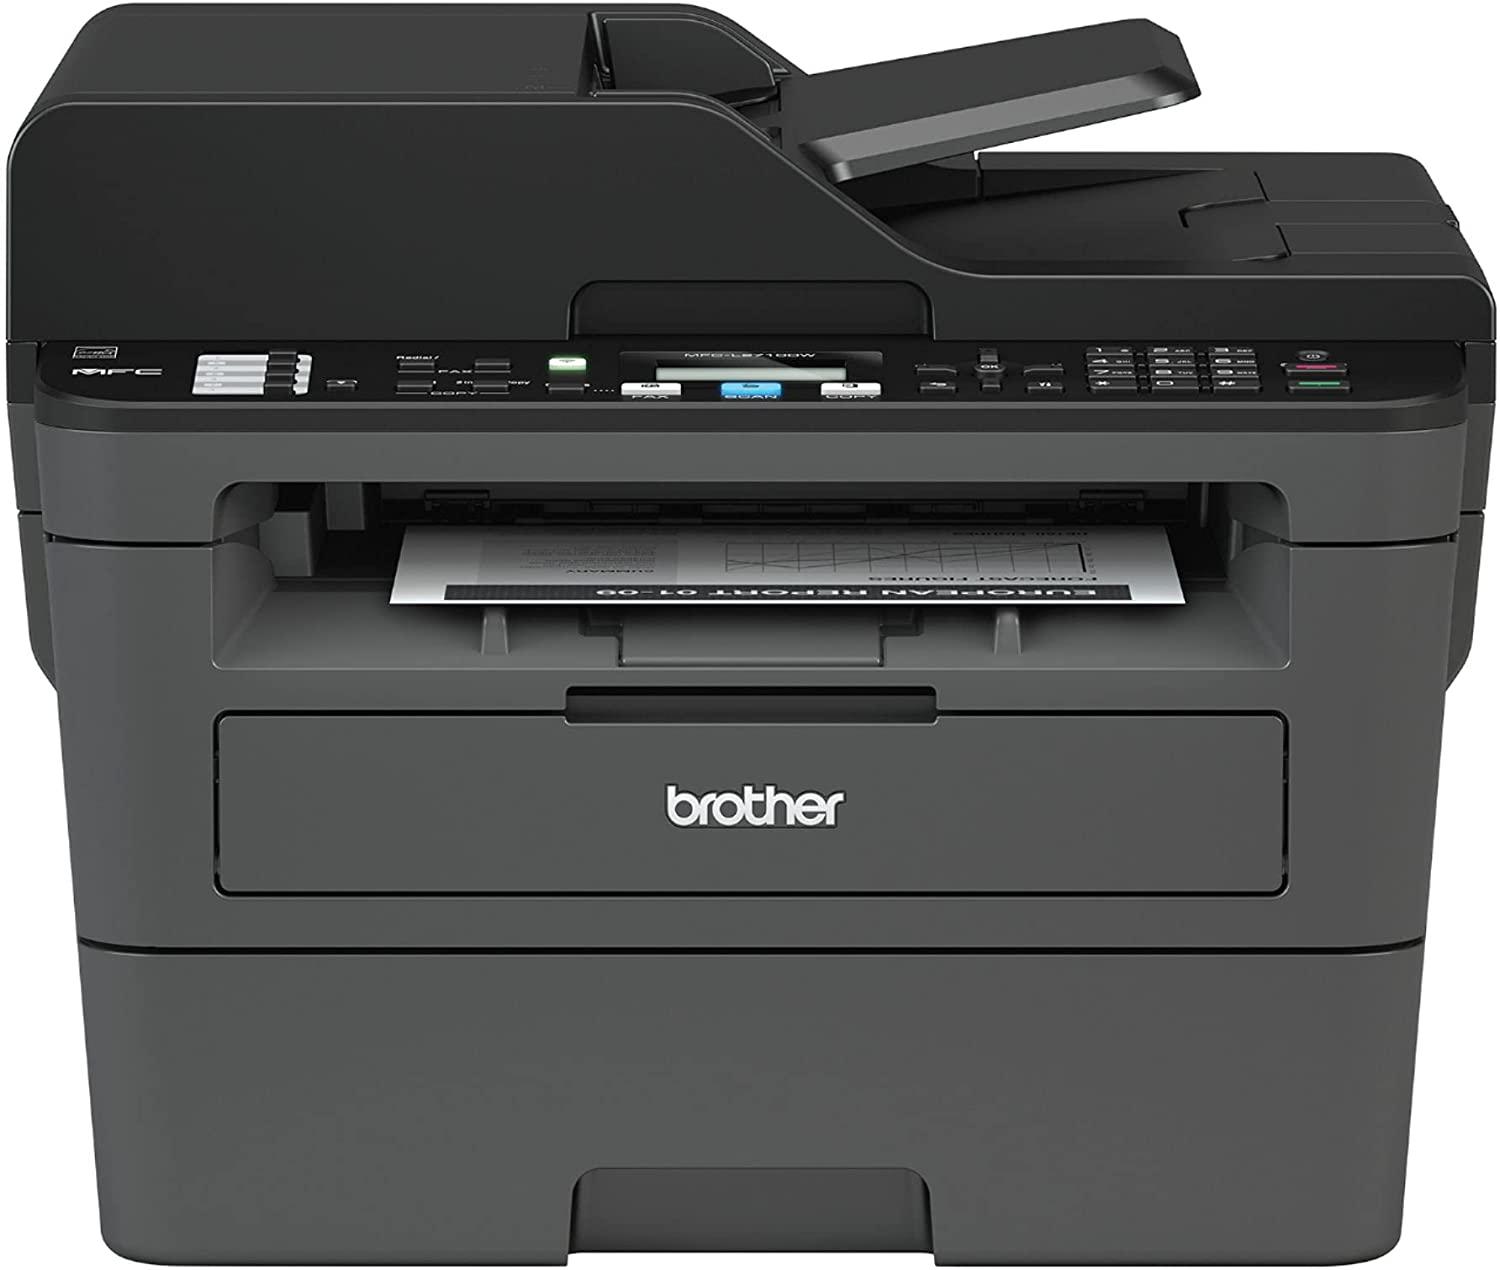 Brother MFC-L2710 Popular Be super welcome brand All-in-One Wireless Monochrome f Laser Printer